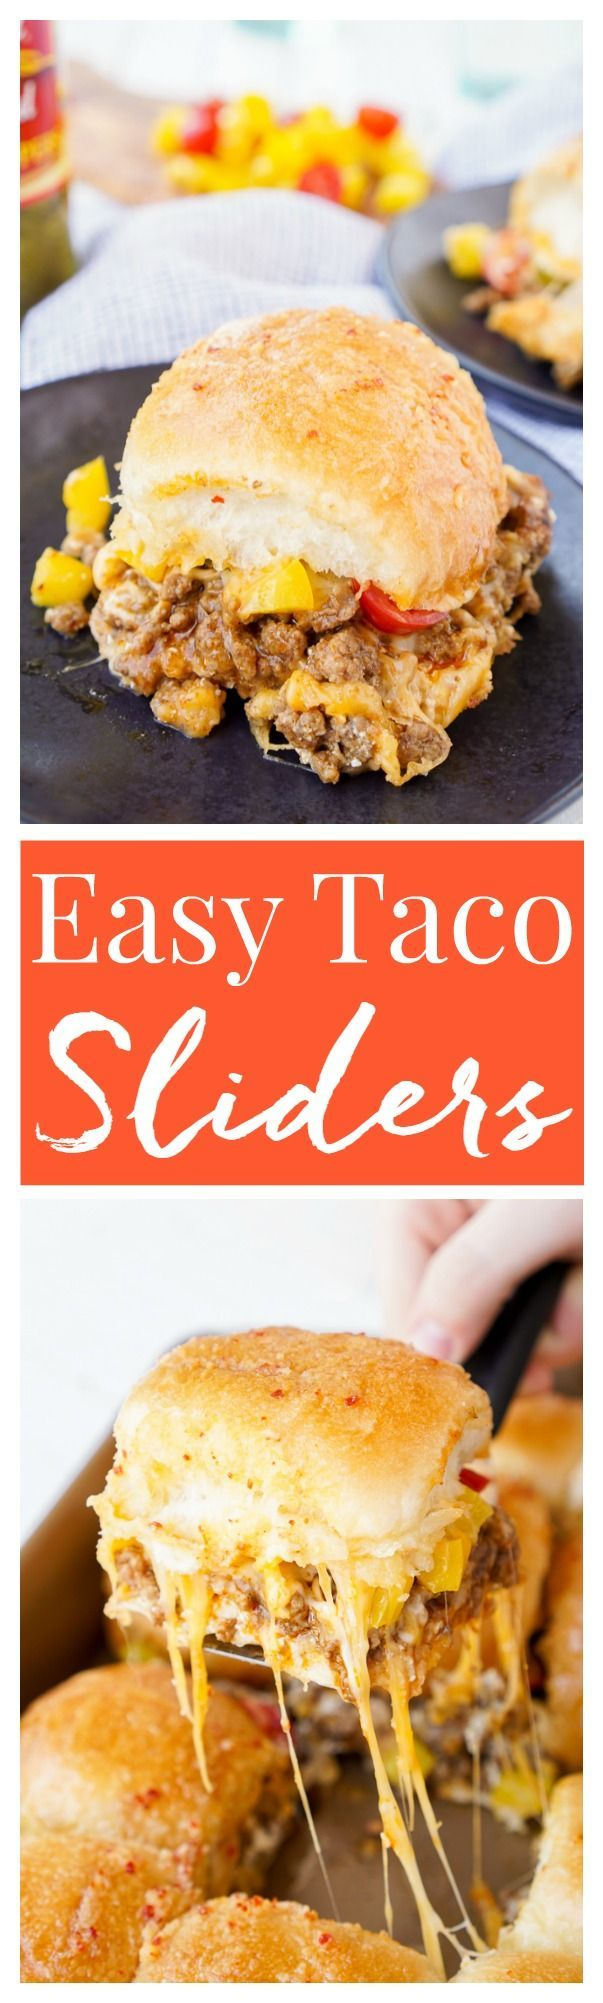 These Easy Taco Sliders are a great alternative to traditional tacos! They're simple to make and loaded with flavor, a sure crowd-pleaser and a great use for leftover taco meat too!